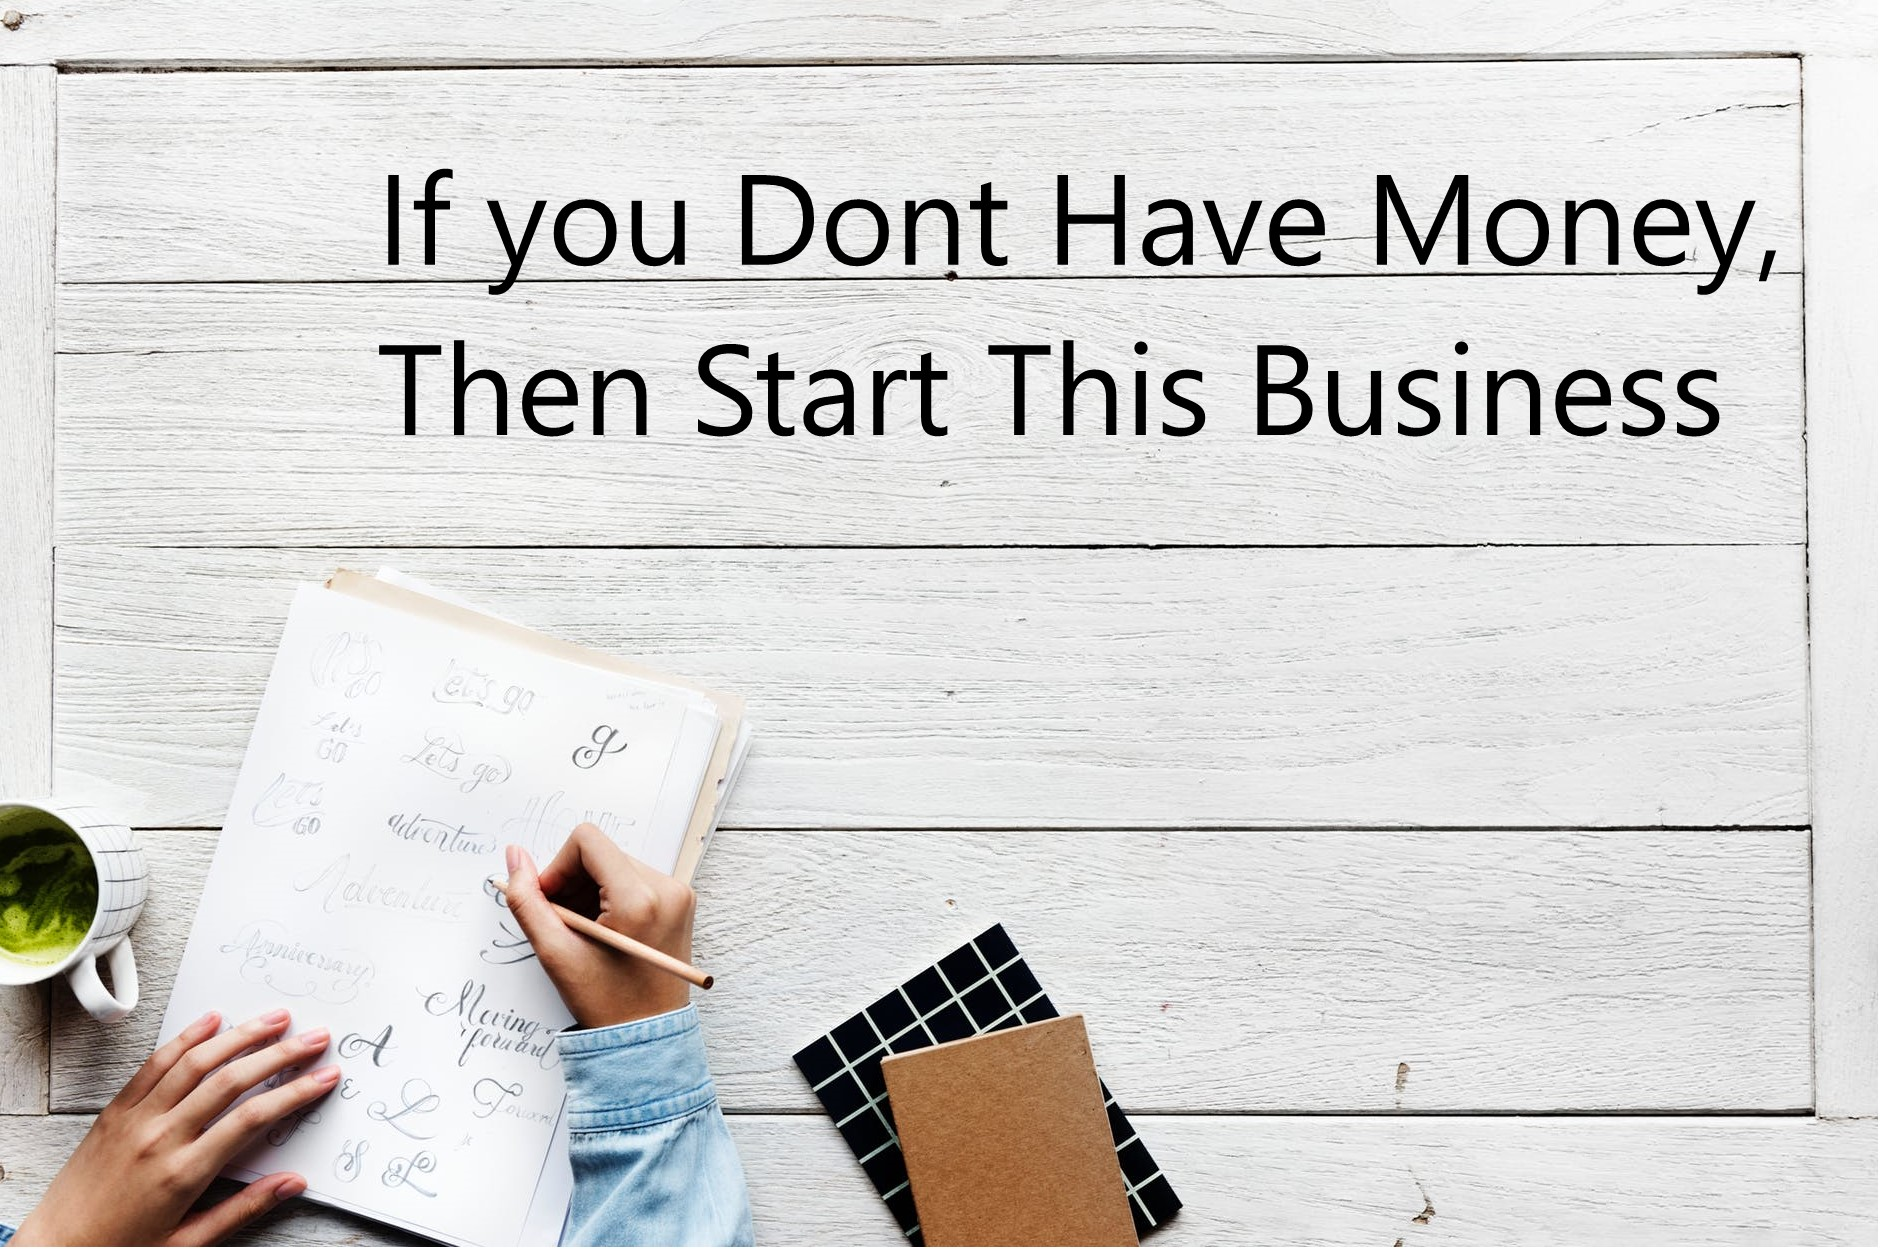 If you have No Money, then Start this Business